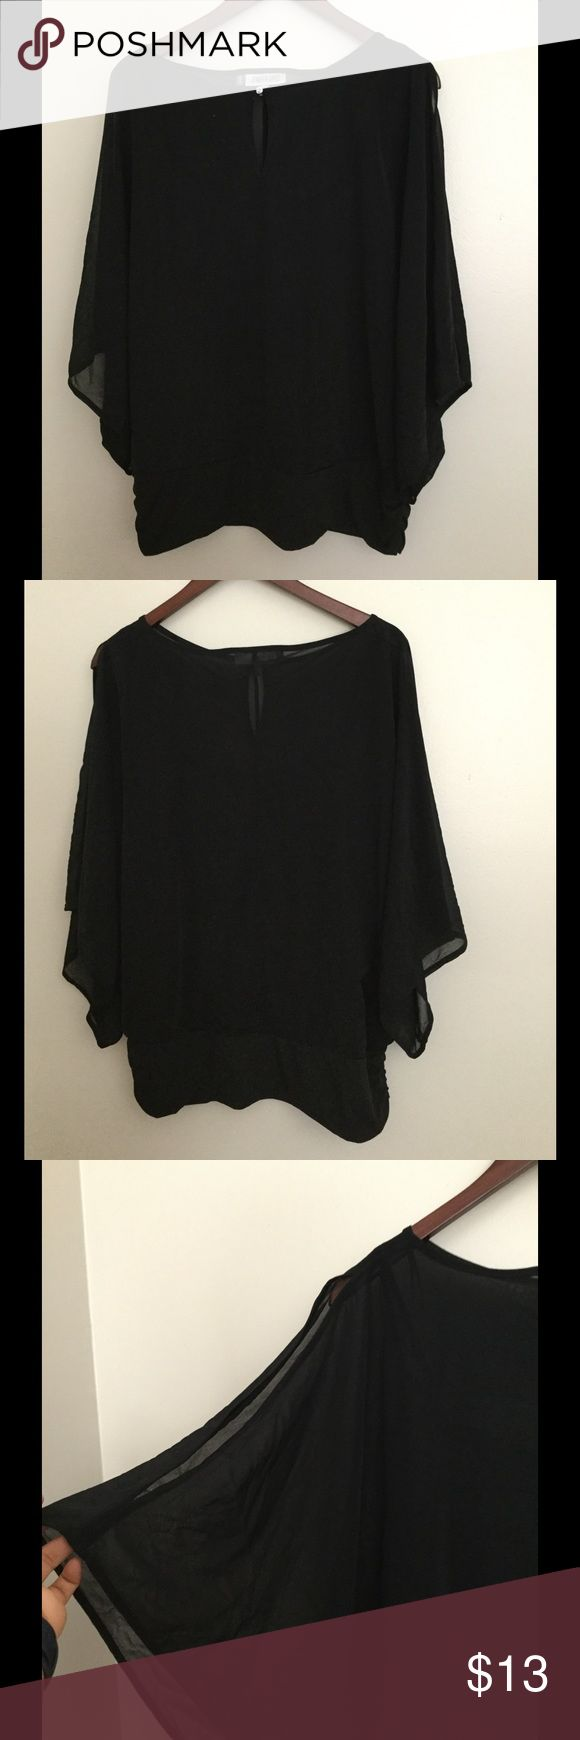 1 DAY SALE Jennifer Lopez Sheer top w/black tank Jennifer Lopez Sheer batwing top with black tank top beneath. Size XL. Pre-owned and in good condition. Top is tapered at bottom with some ruching on the sides (see last pic) Jennifer Lopez Tops Blouses